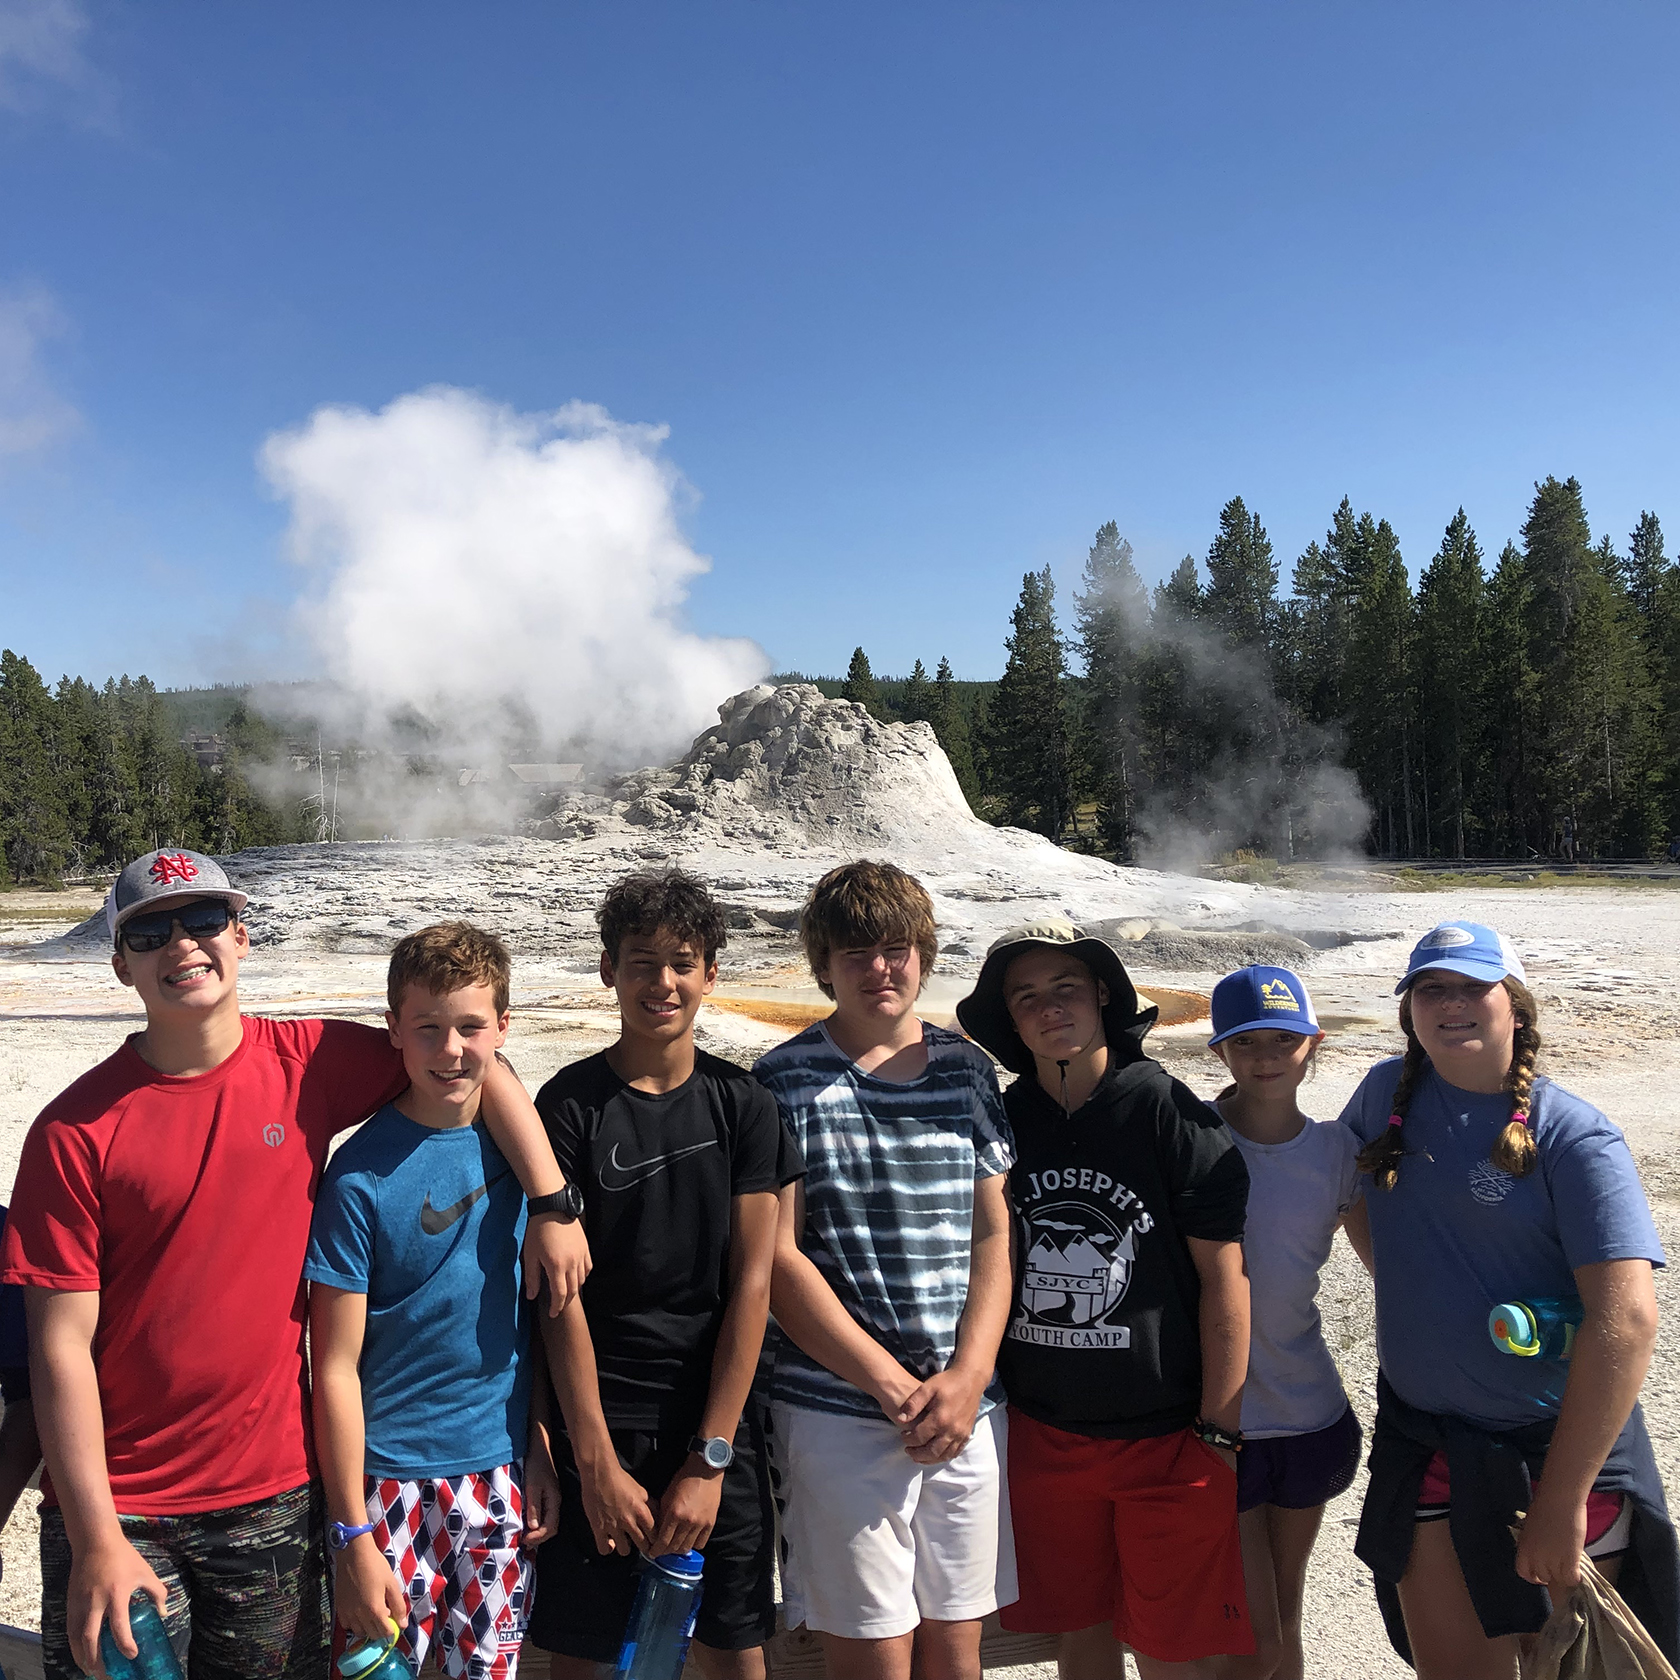 Travelers at Old Faithful in Yellowstone